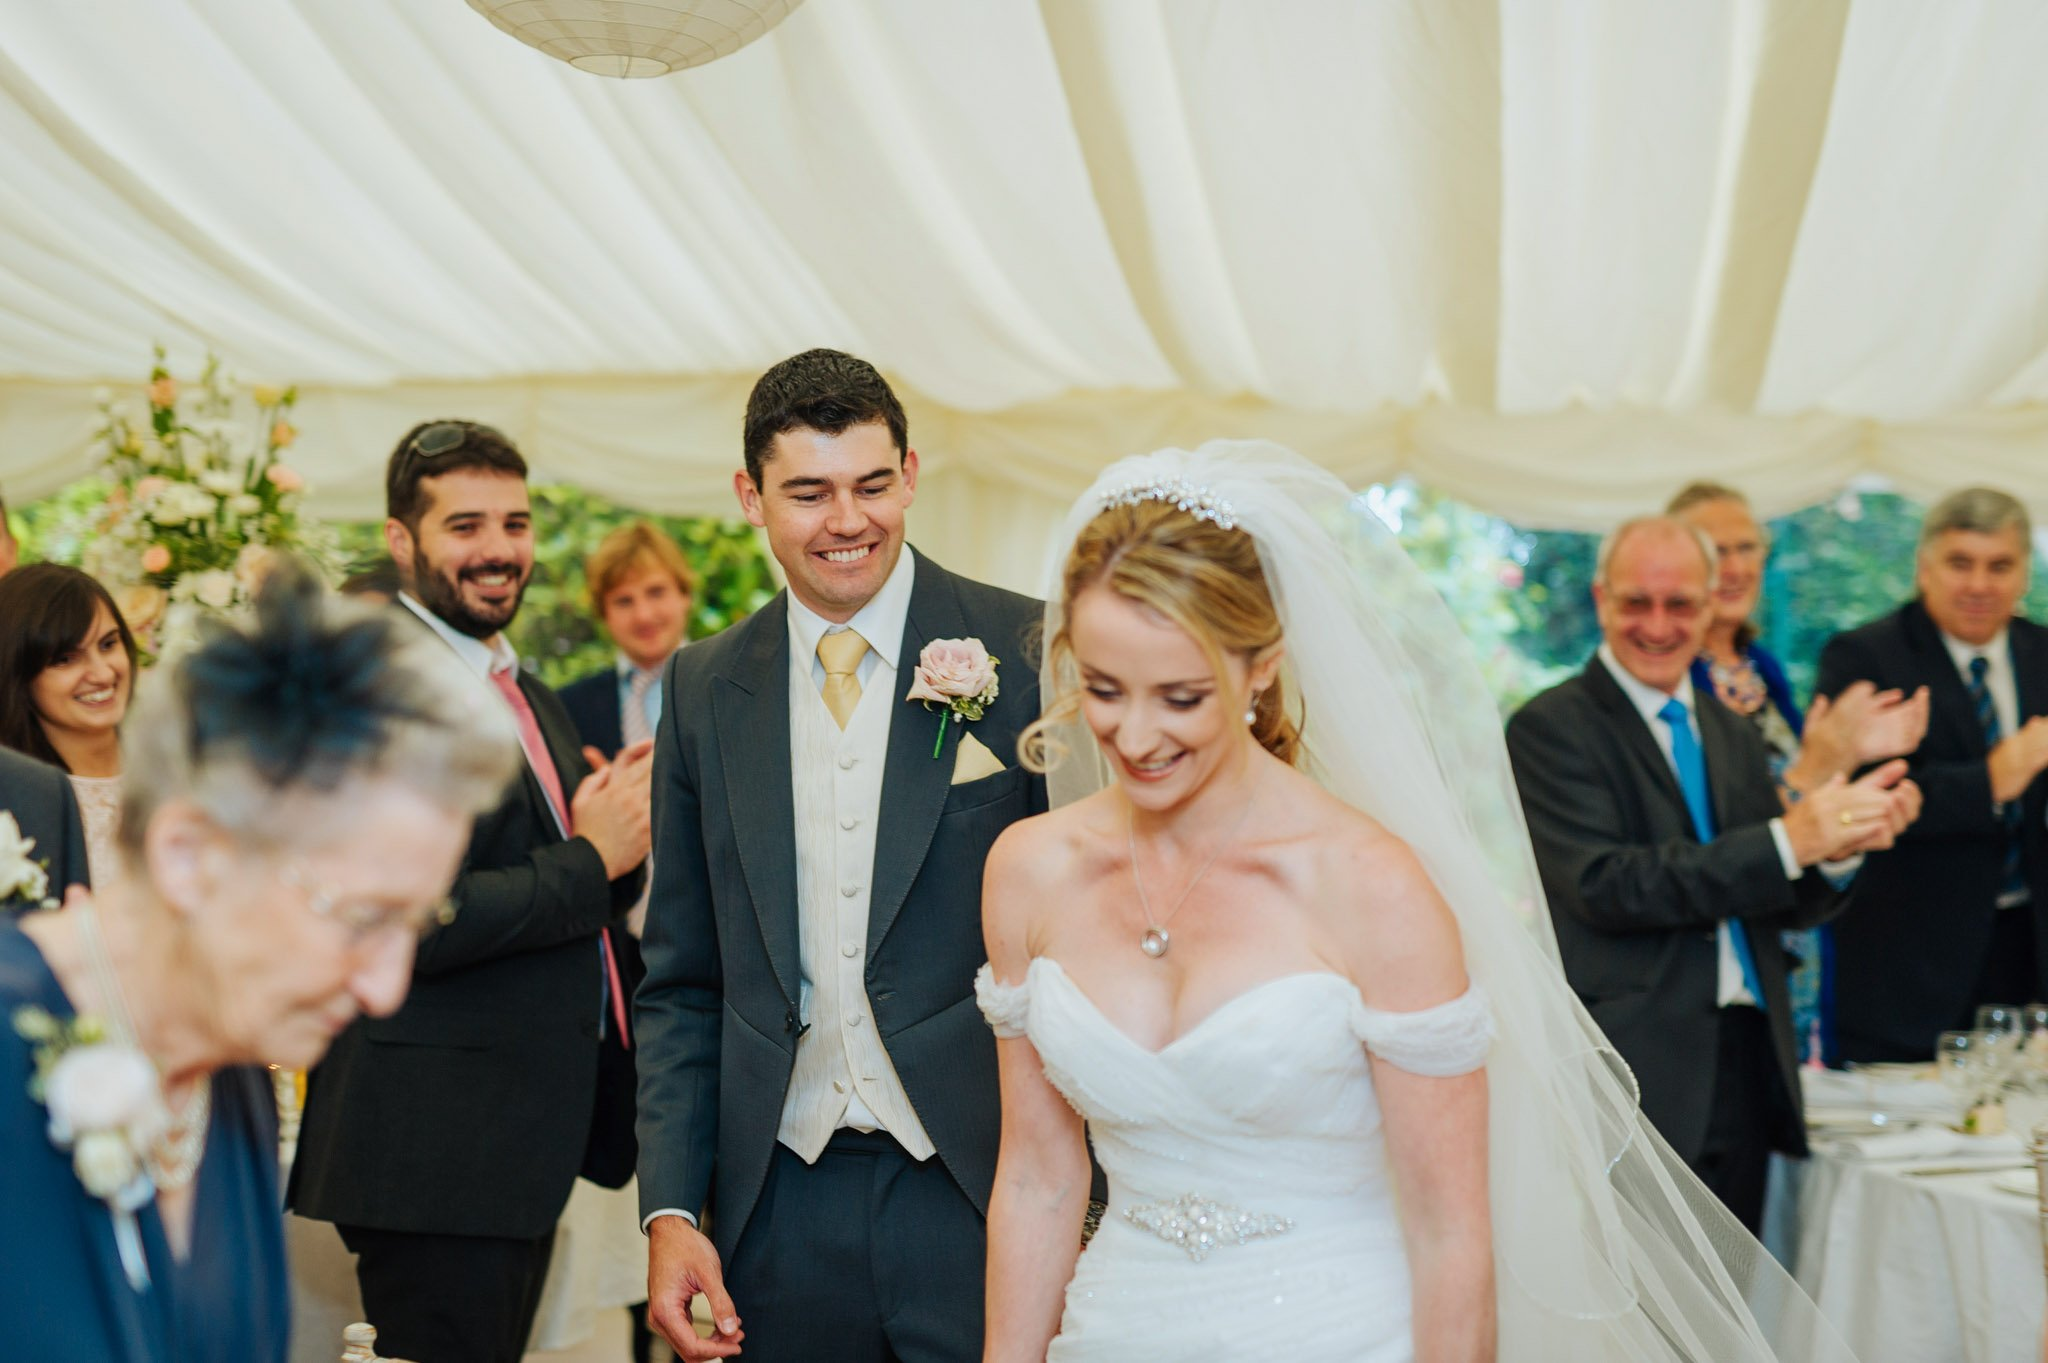 Georgina + Mike - Wedding photography in Malvern, Worcestershire 52